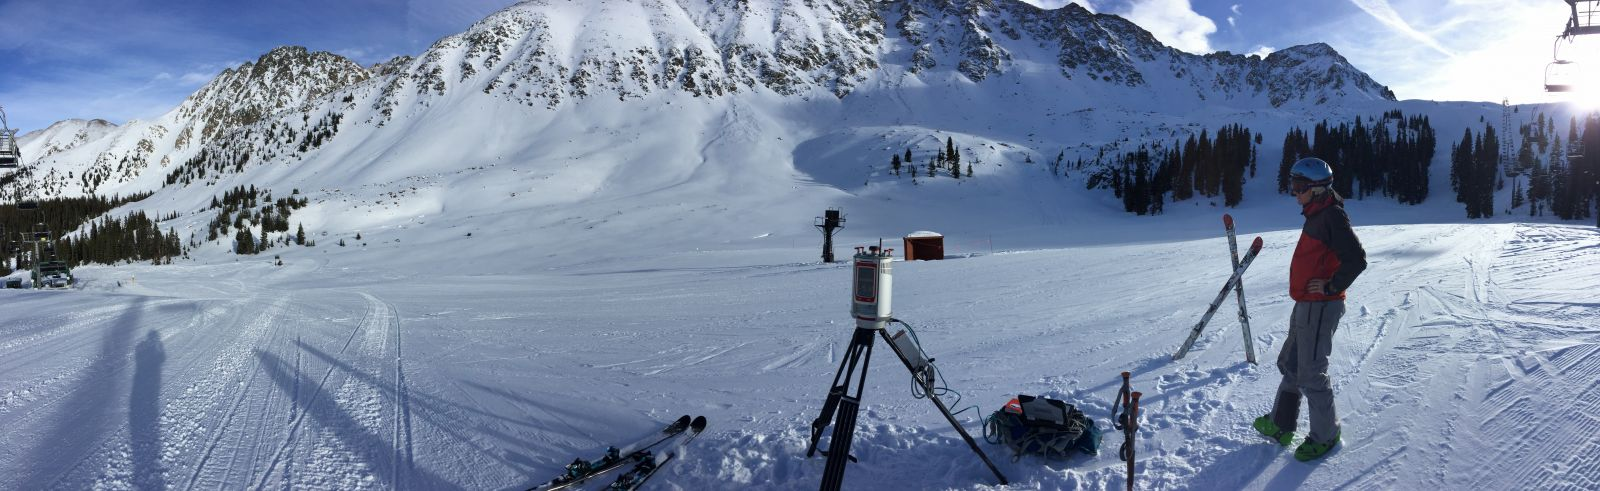 Photograph of a researcher scanning snow depth